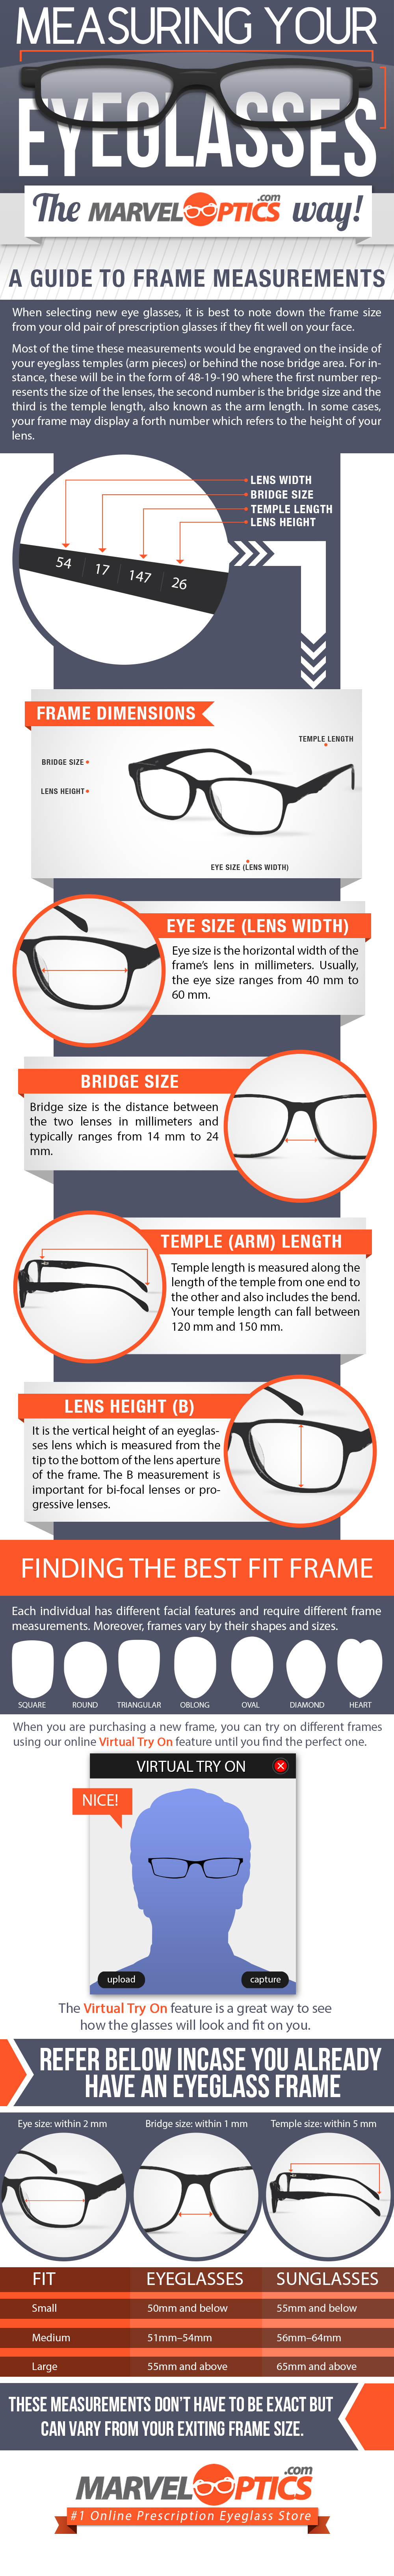 measuring-your-eyegalsses-infographic1